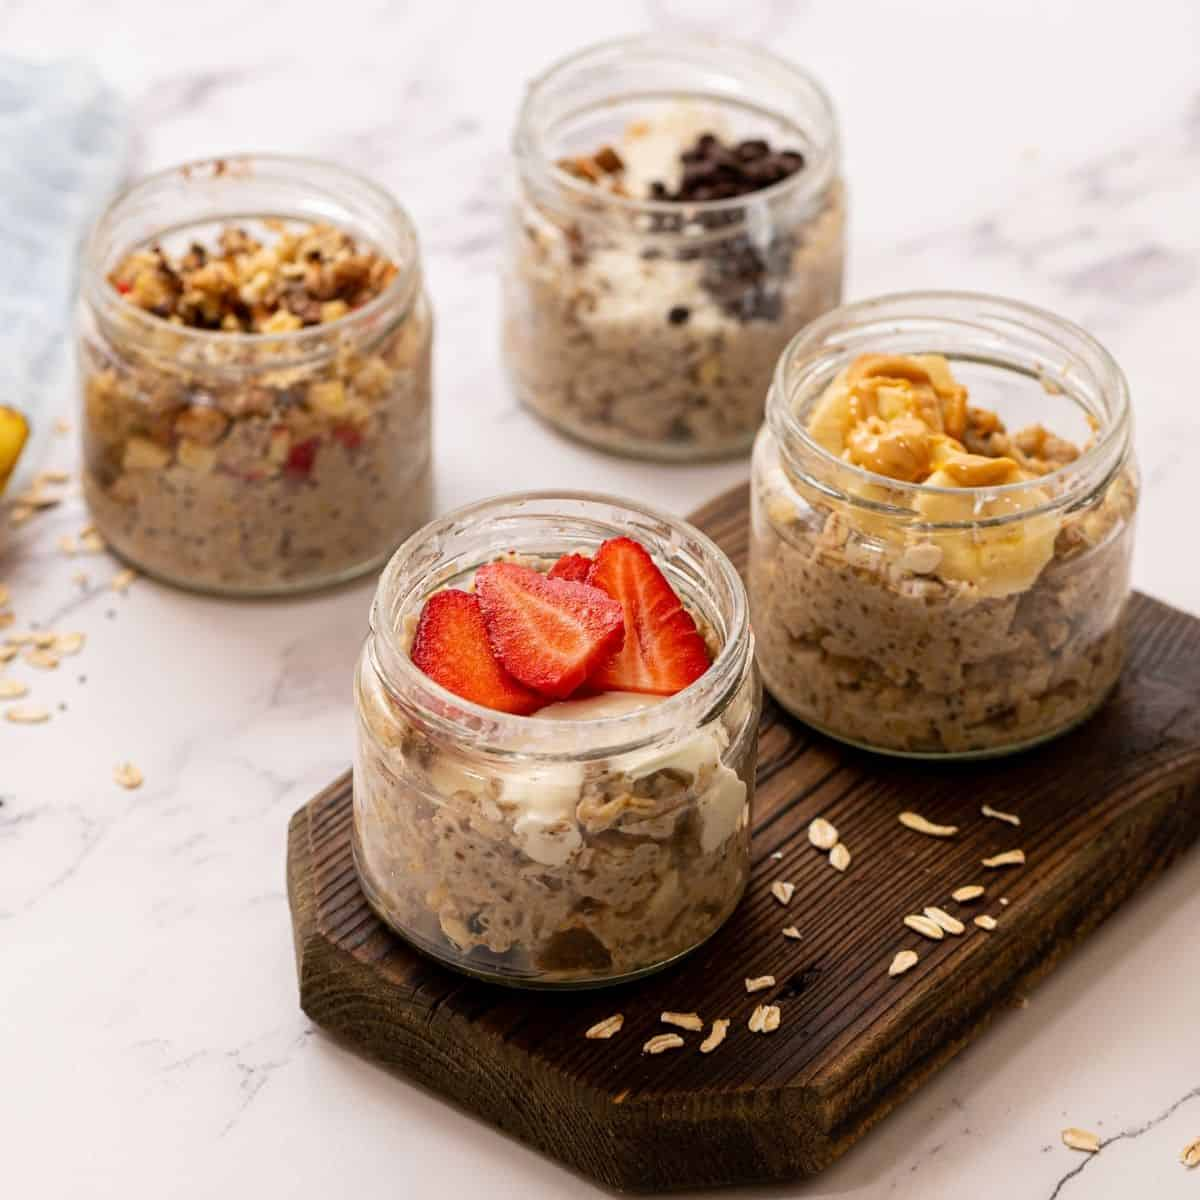 4 jars of overnight oats flavored in 4 different ways.